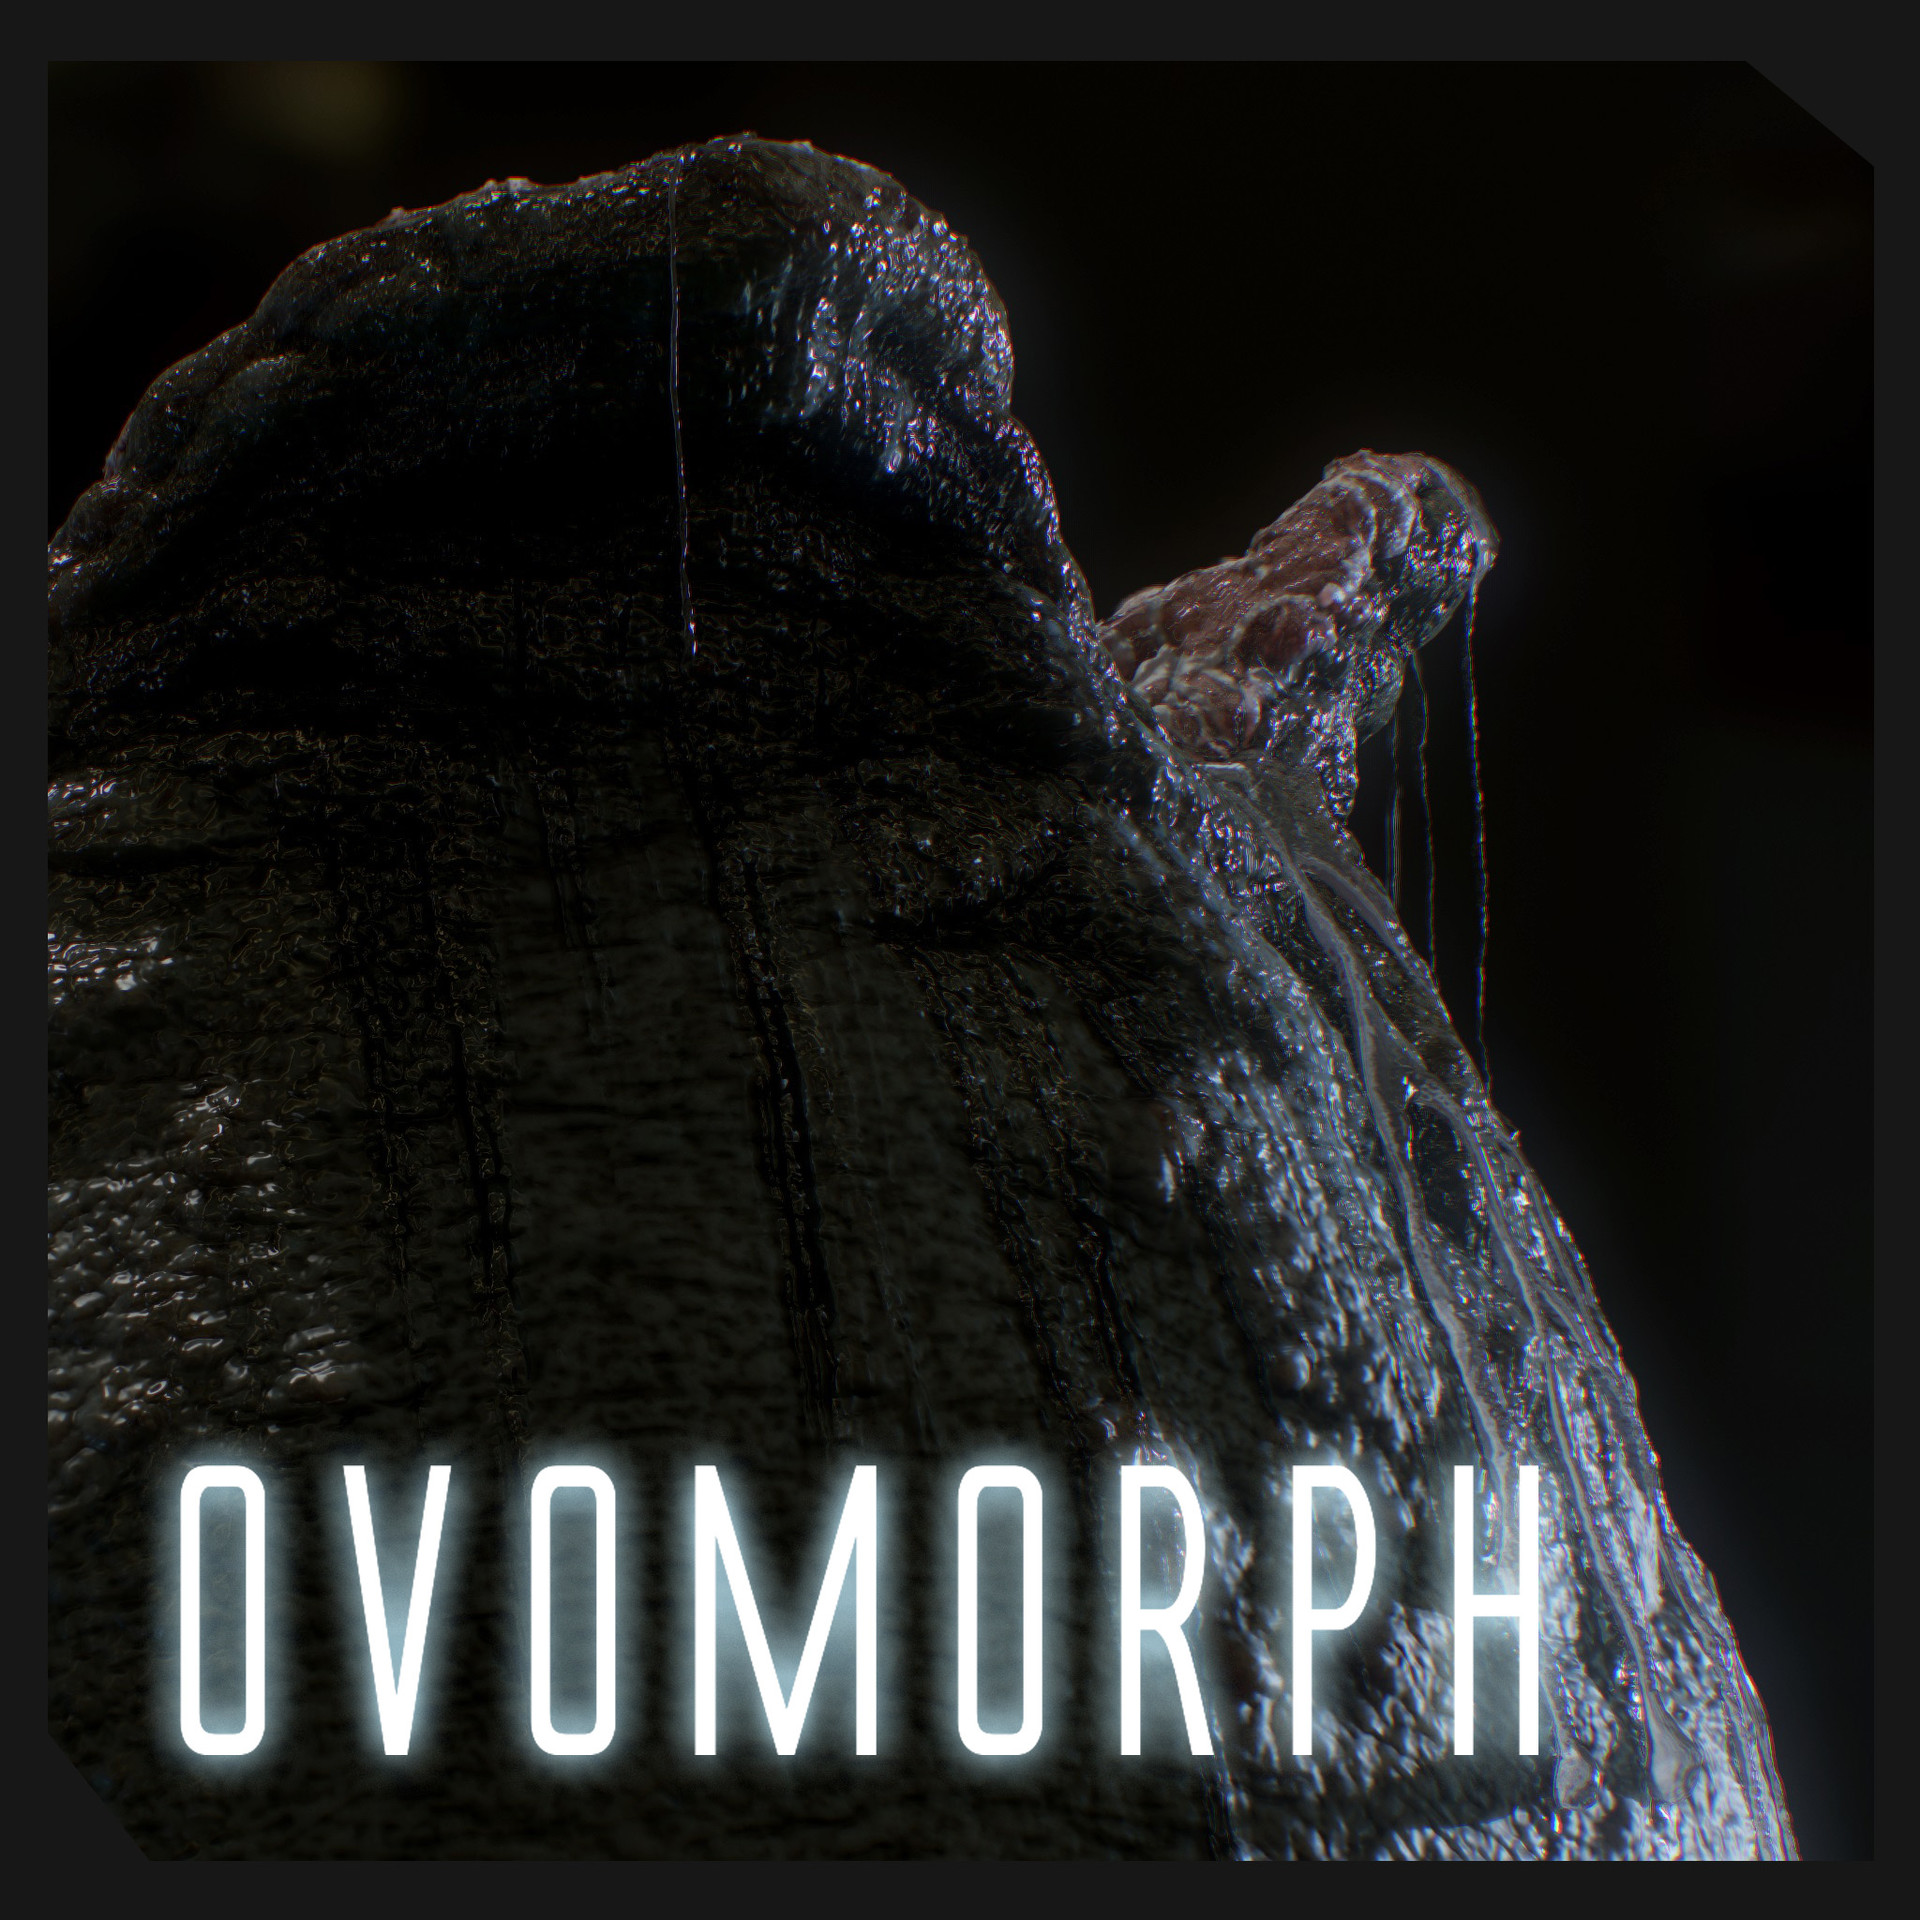 Alien Ovomorph by Sergio Mengual